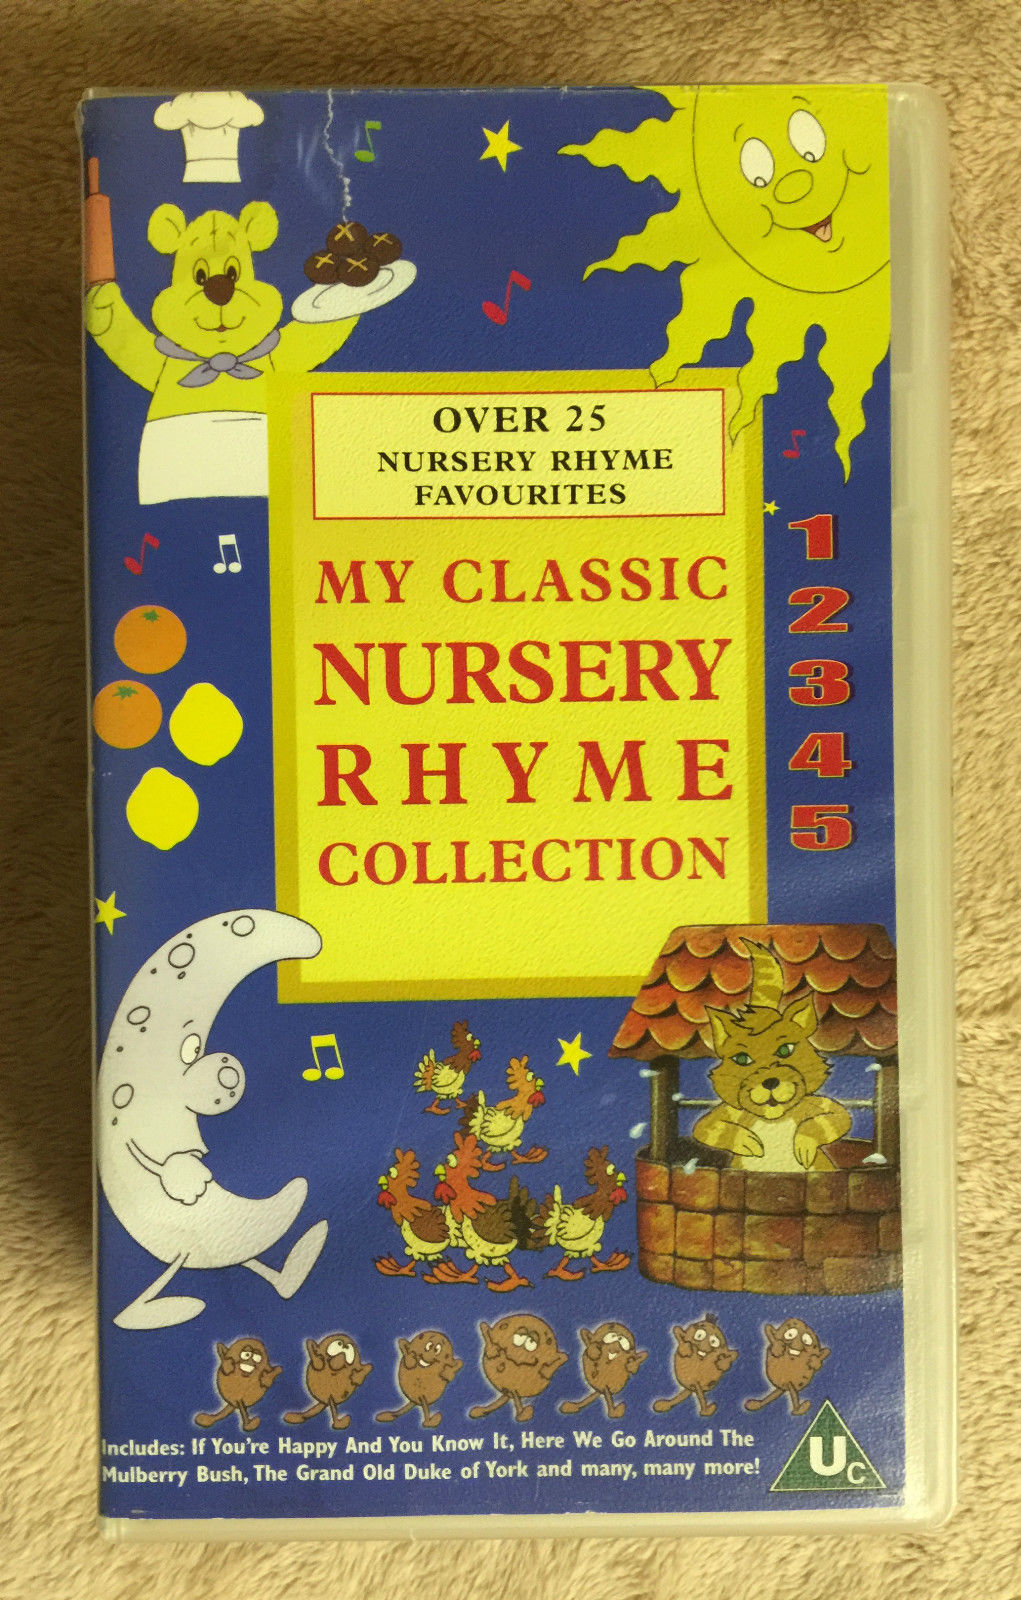 My Clic Nursery Rhyme Collection